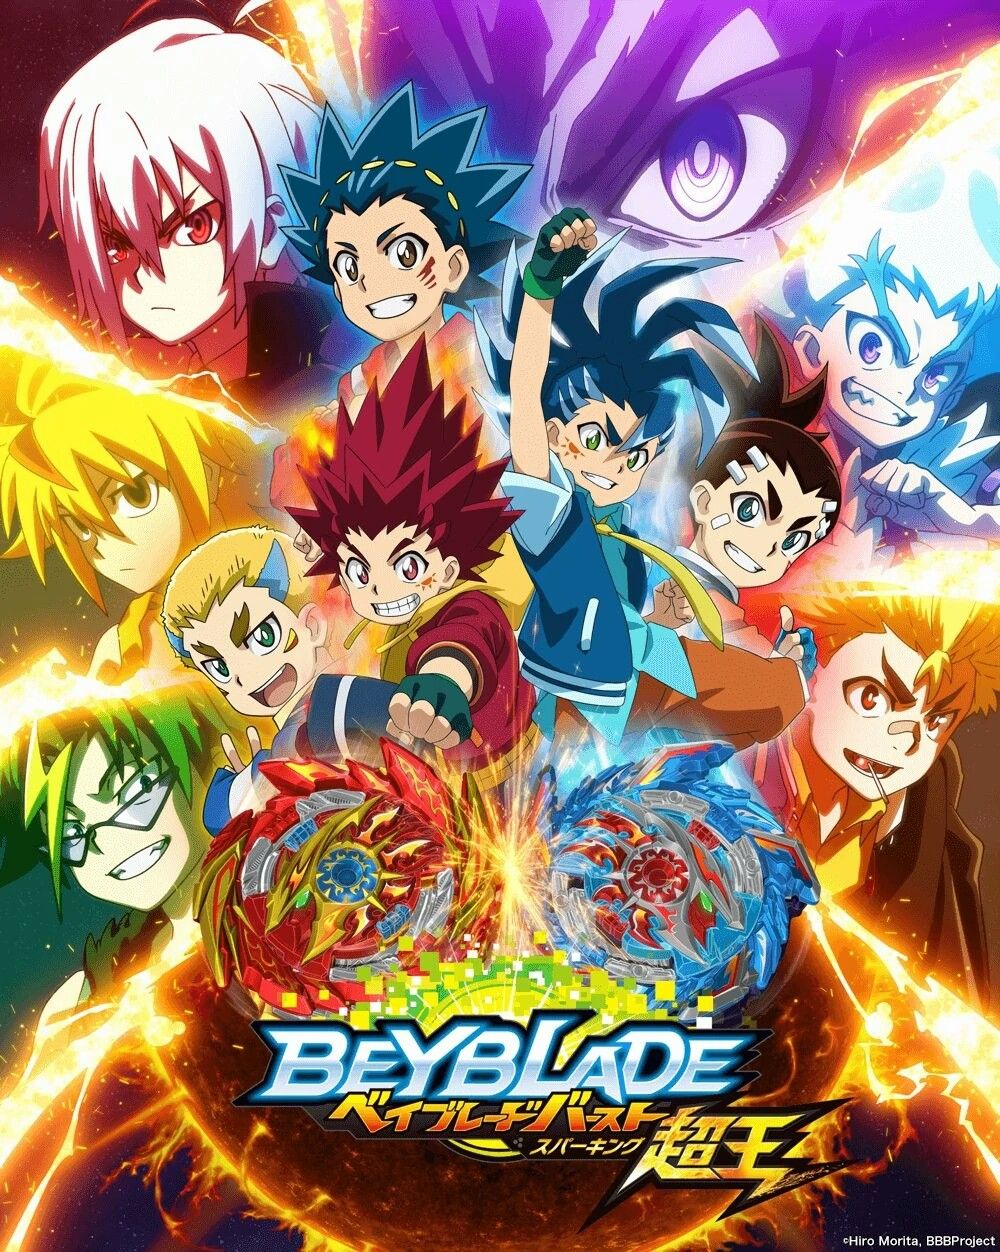 Pin by NEVERMIND ♠ on Beyblade burst sparking / super king